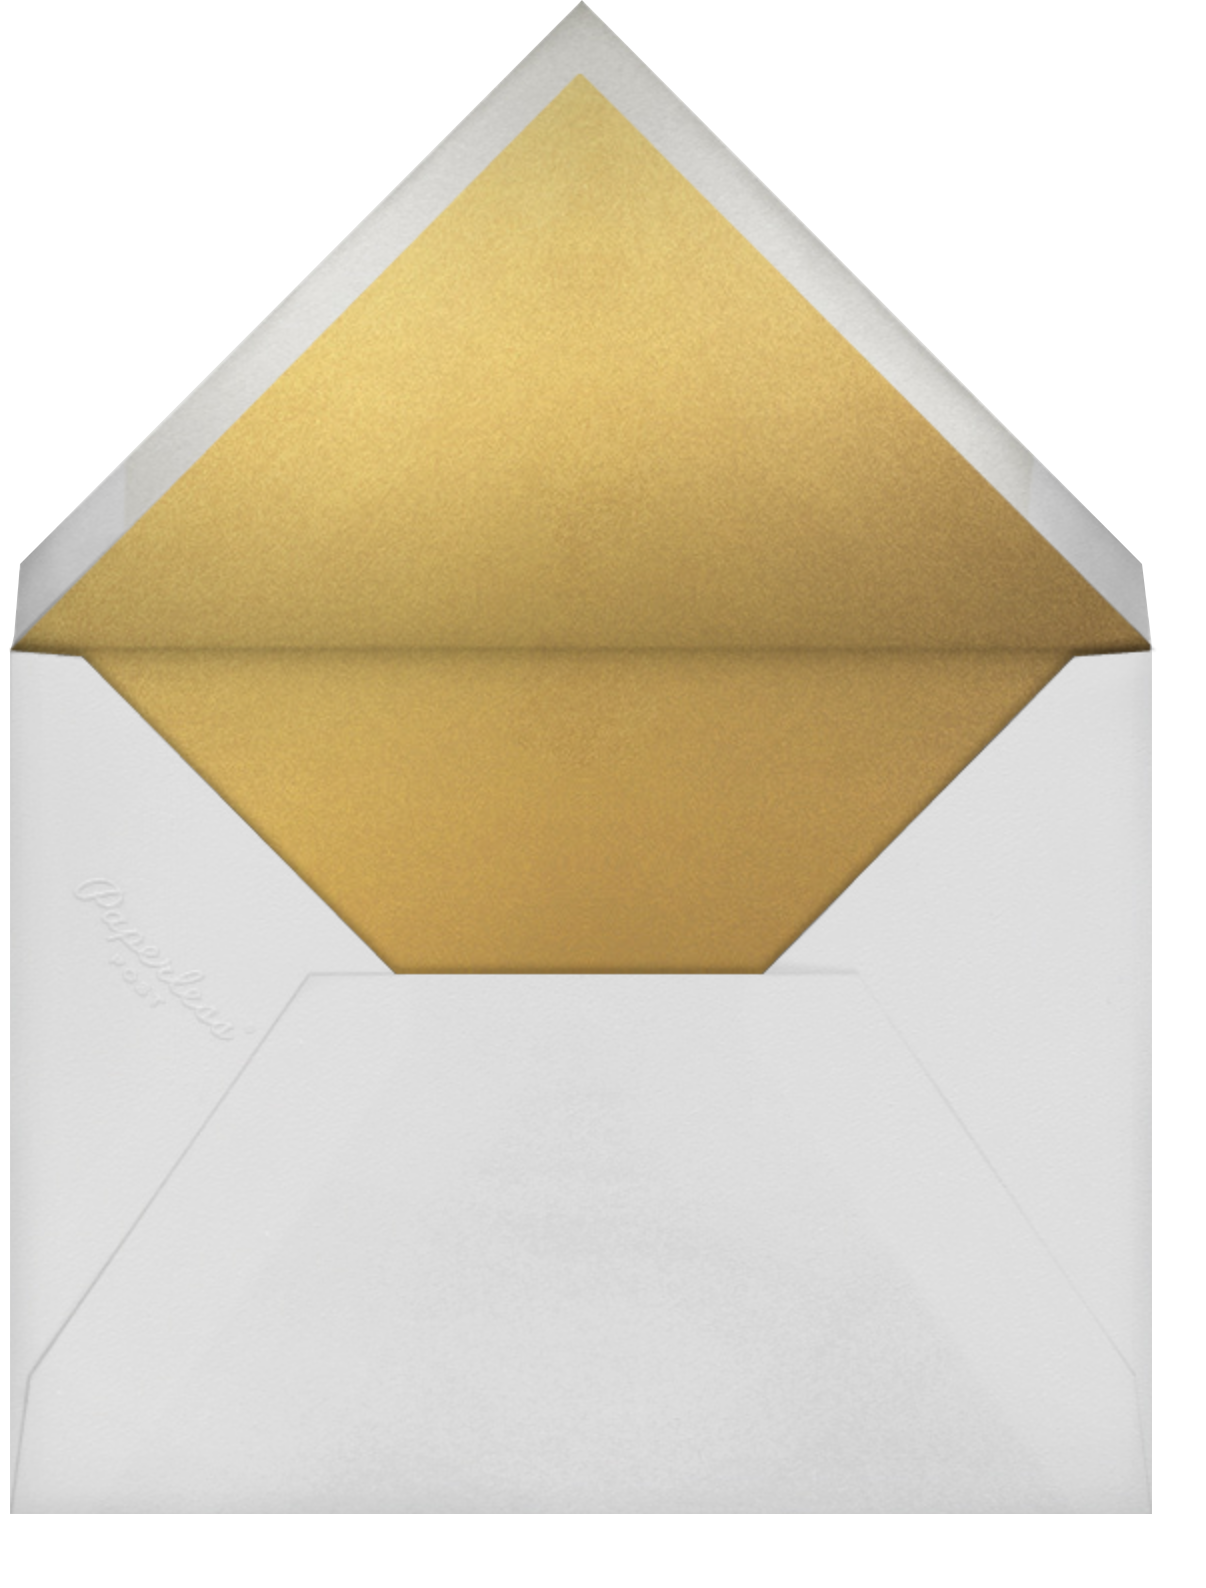 All Curled Up - Paperless Post - Envelope